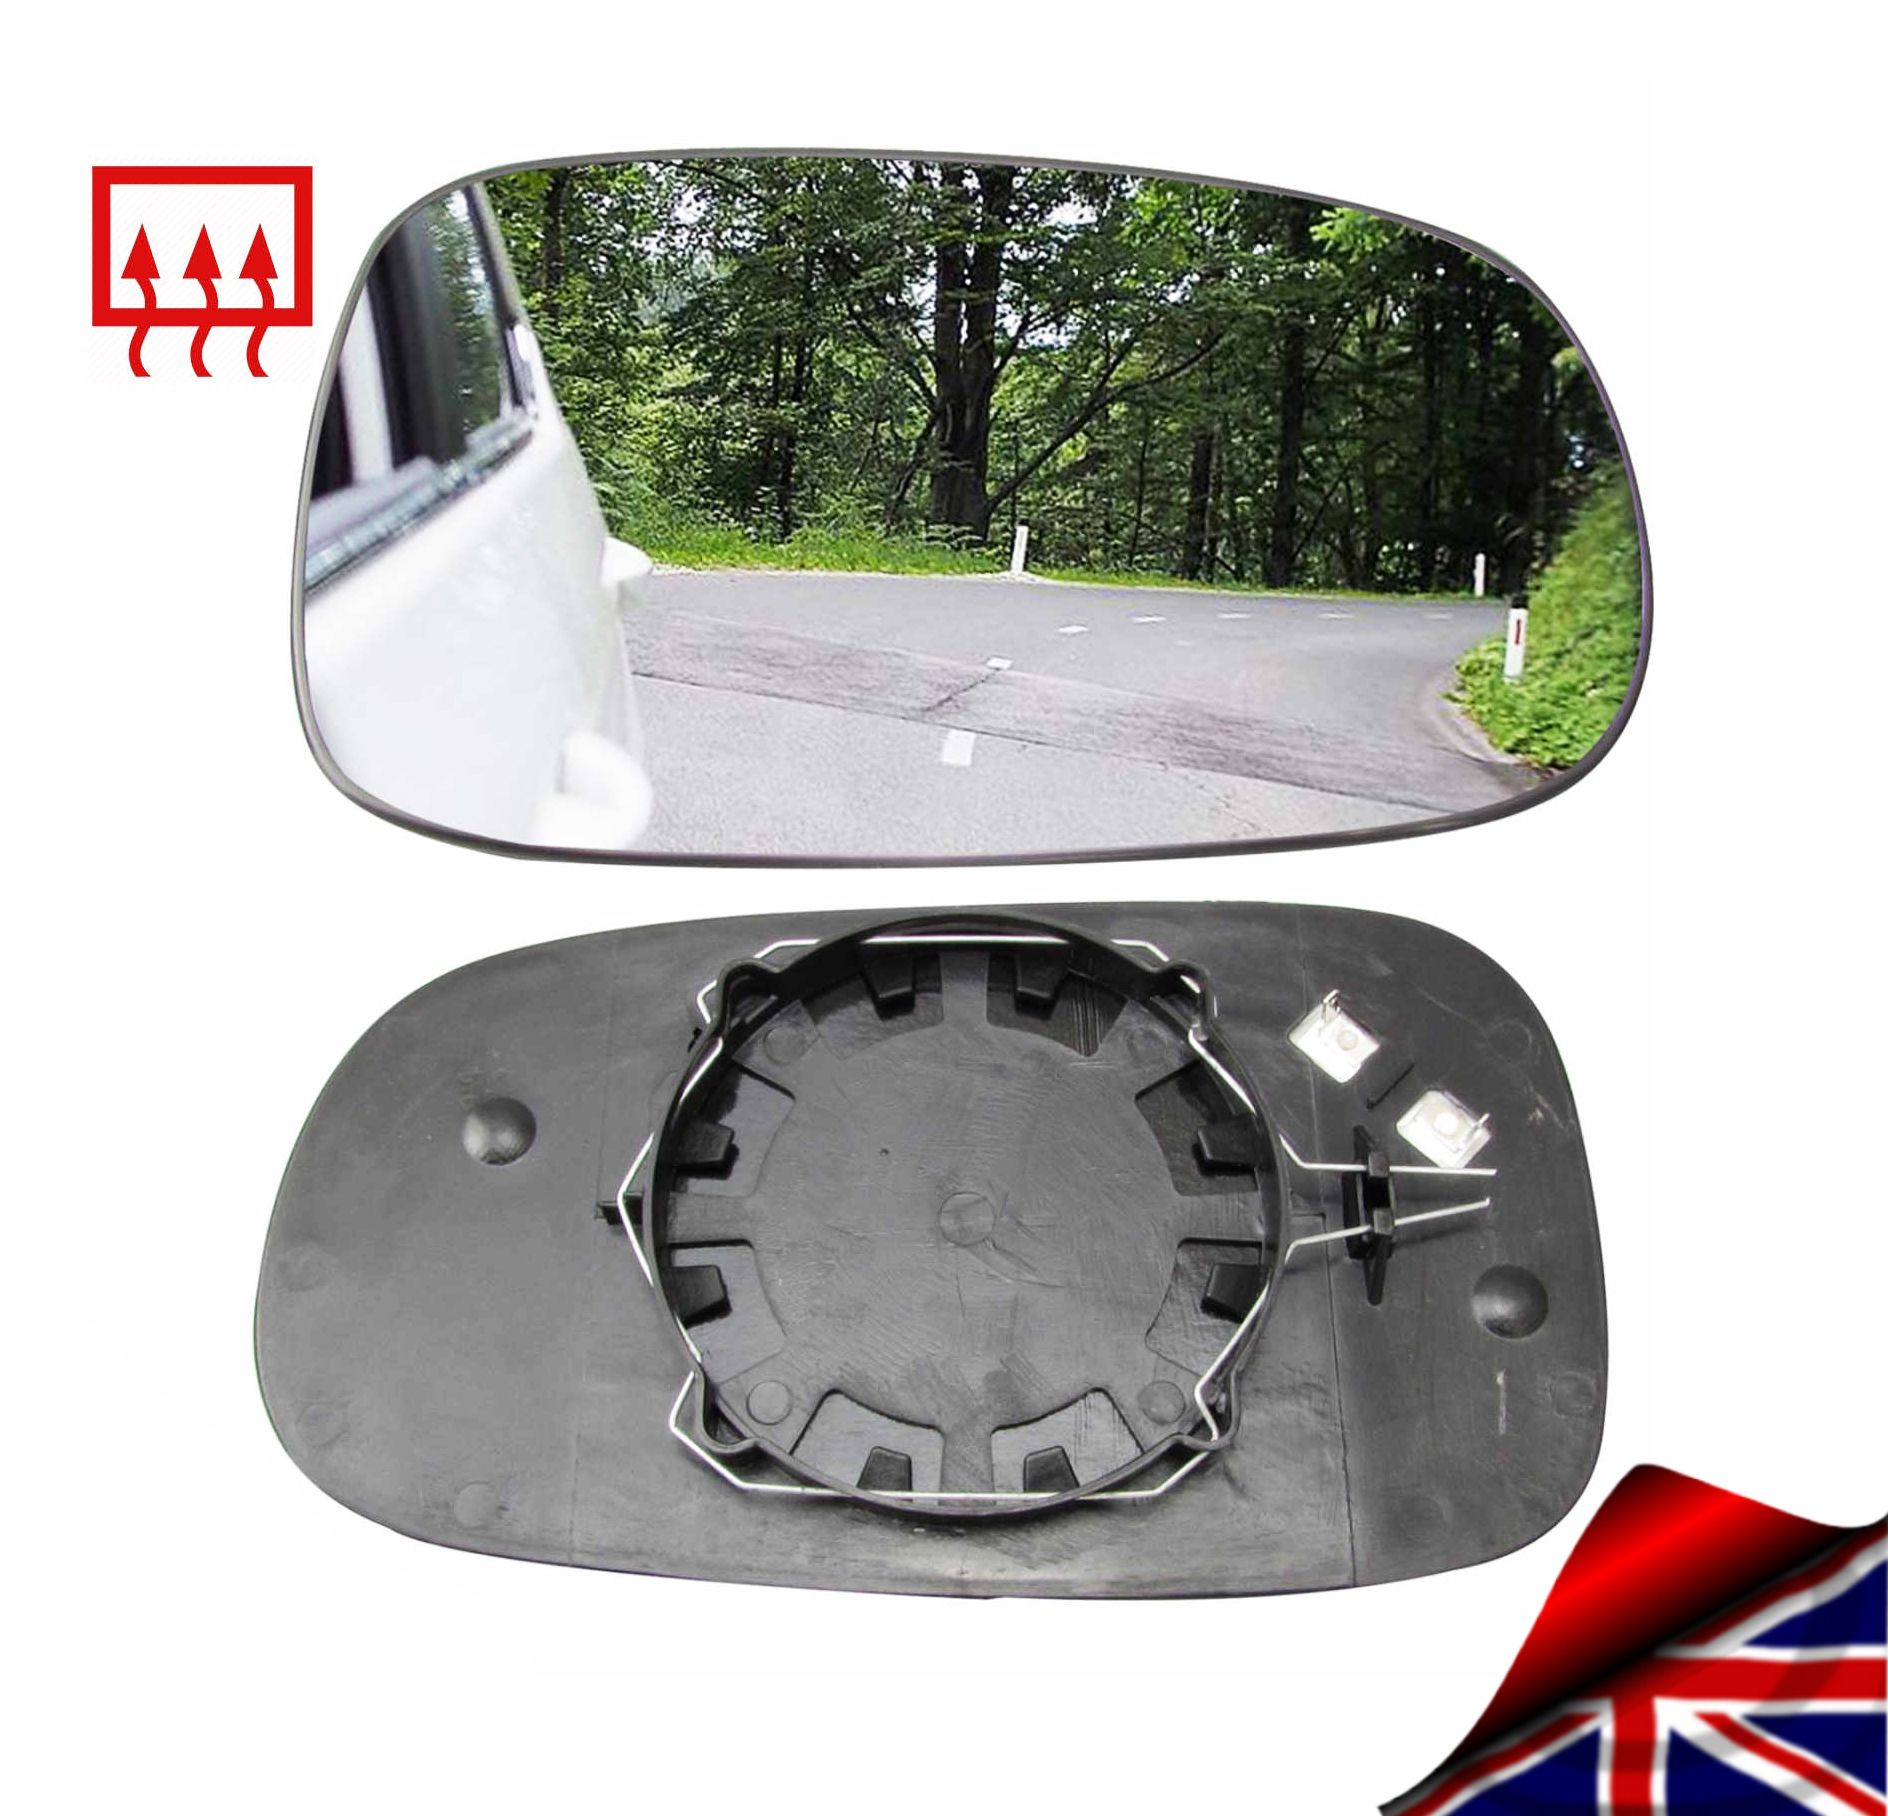 Details About Wing Mirror Glass Saab 9 3 93 2003 10 Heated Right Convex Driver Offside Clip On Wing Mirrors Glass Mirror Saab 9 3